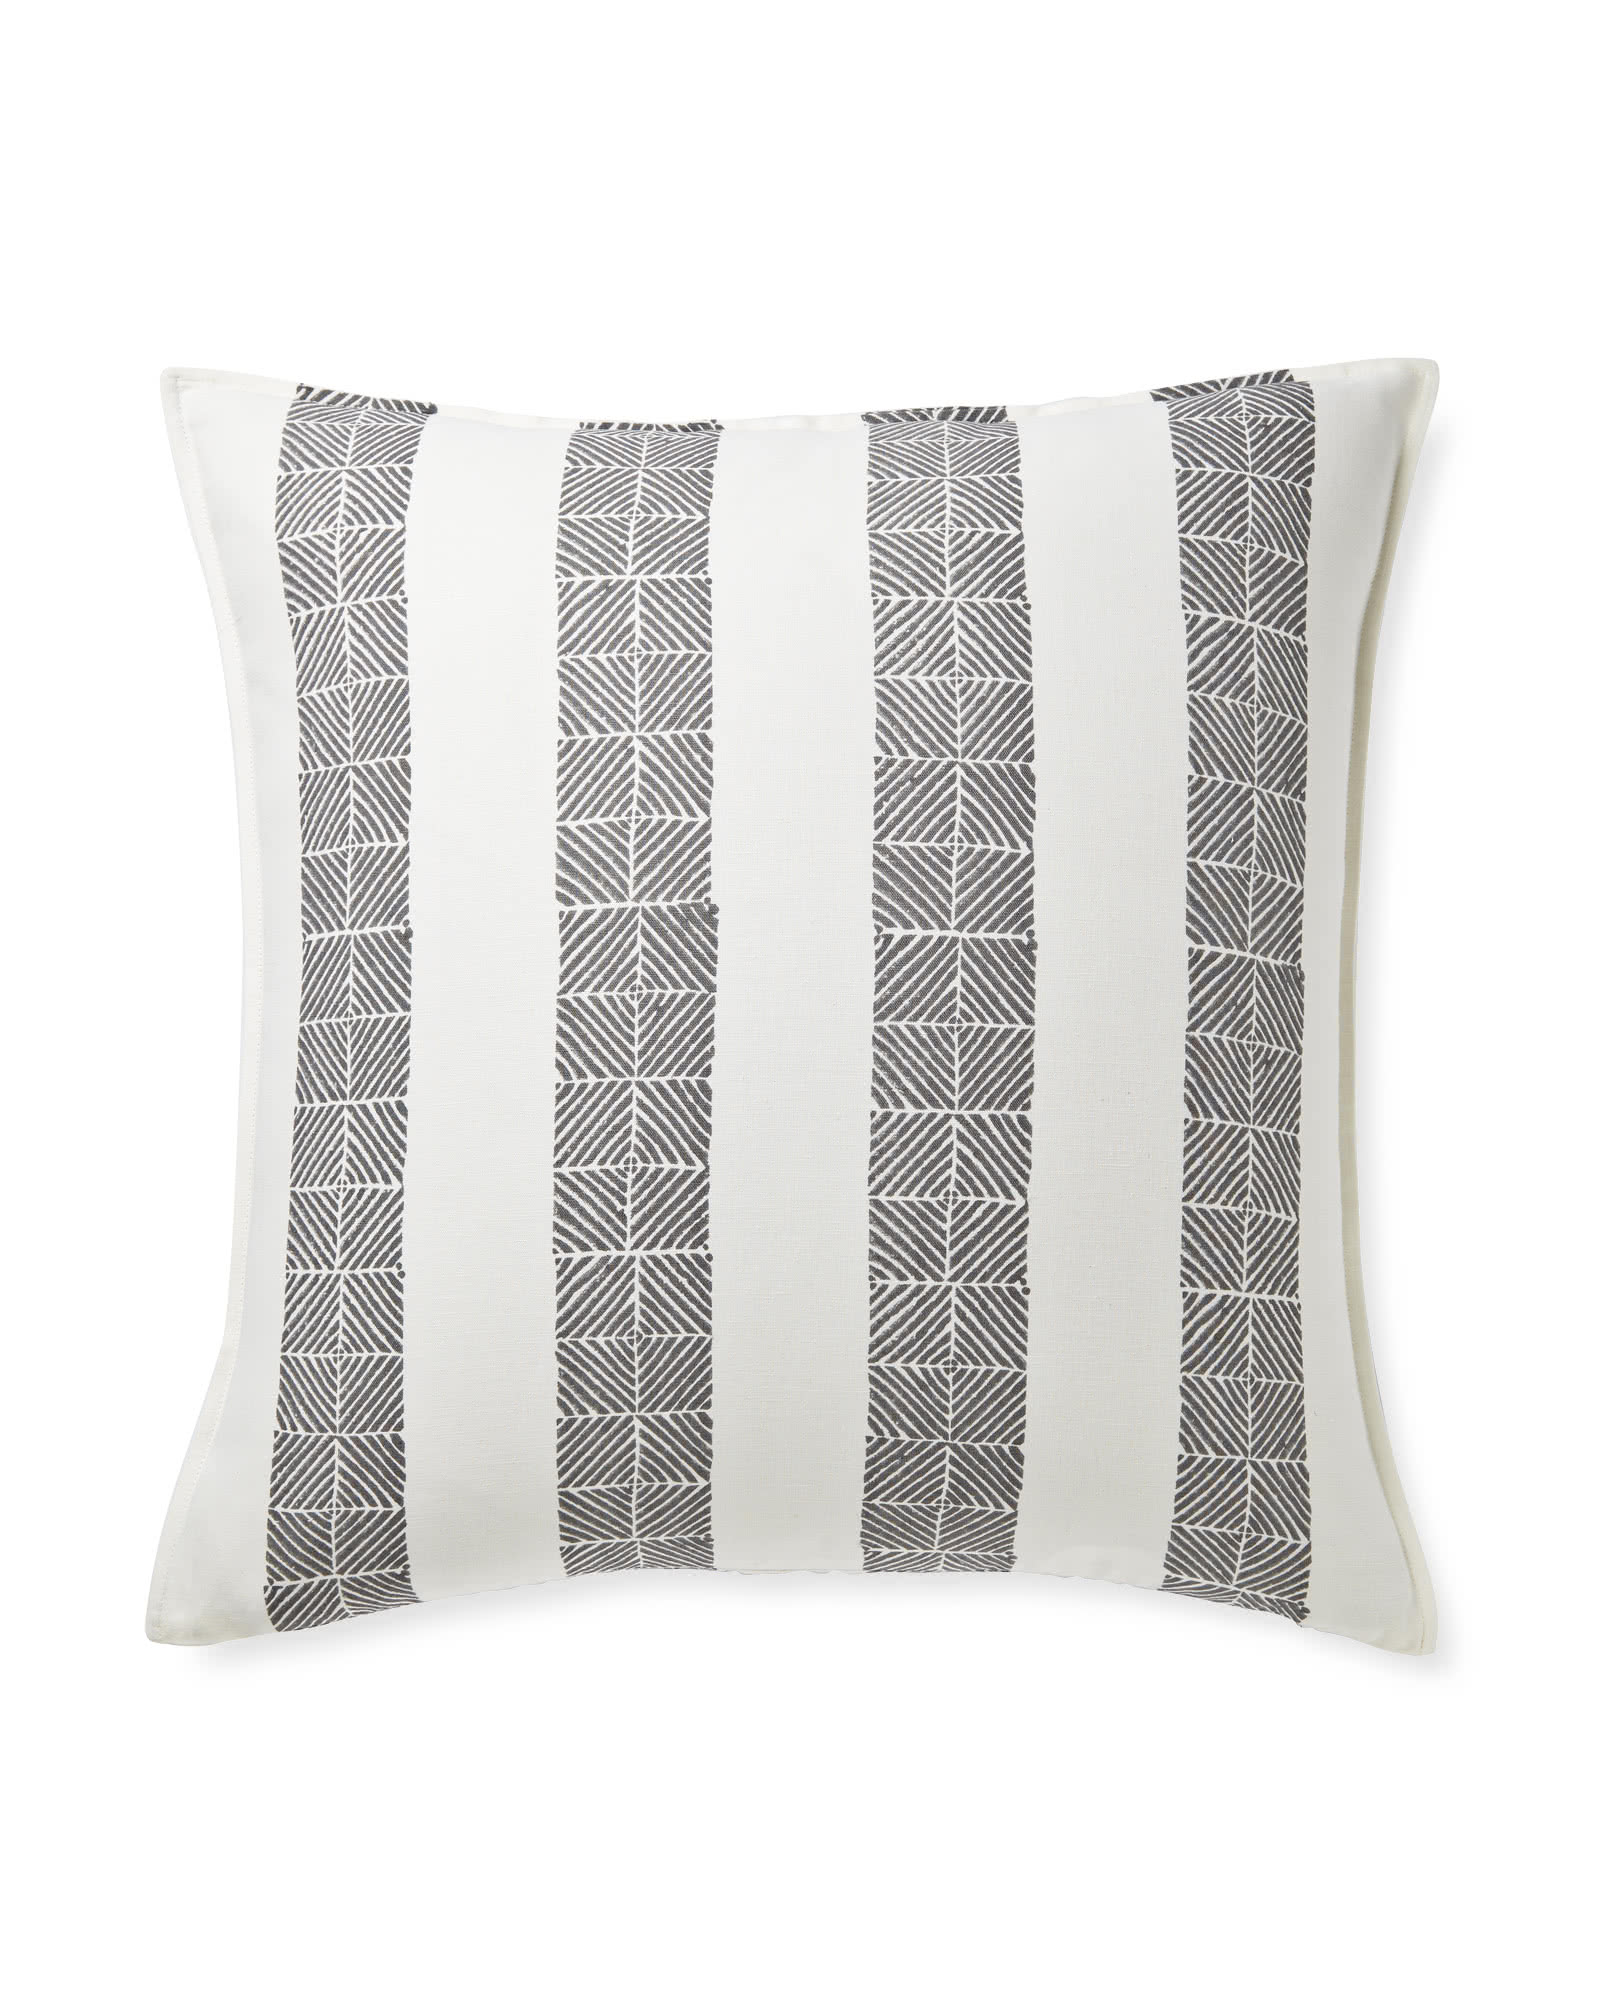 Thatch Stripe Pillow Cover,